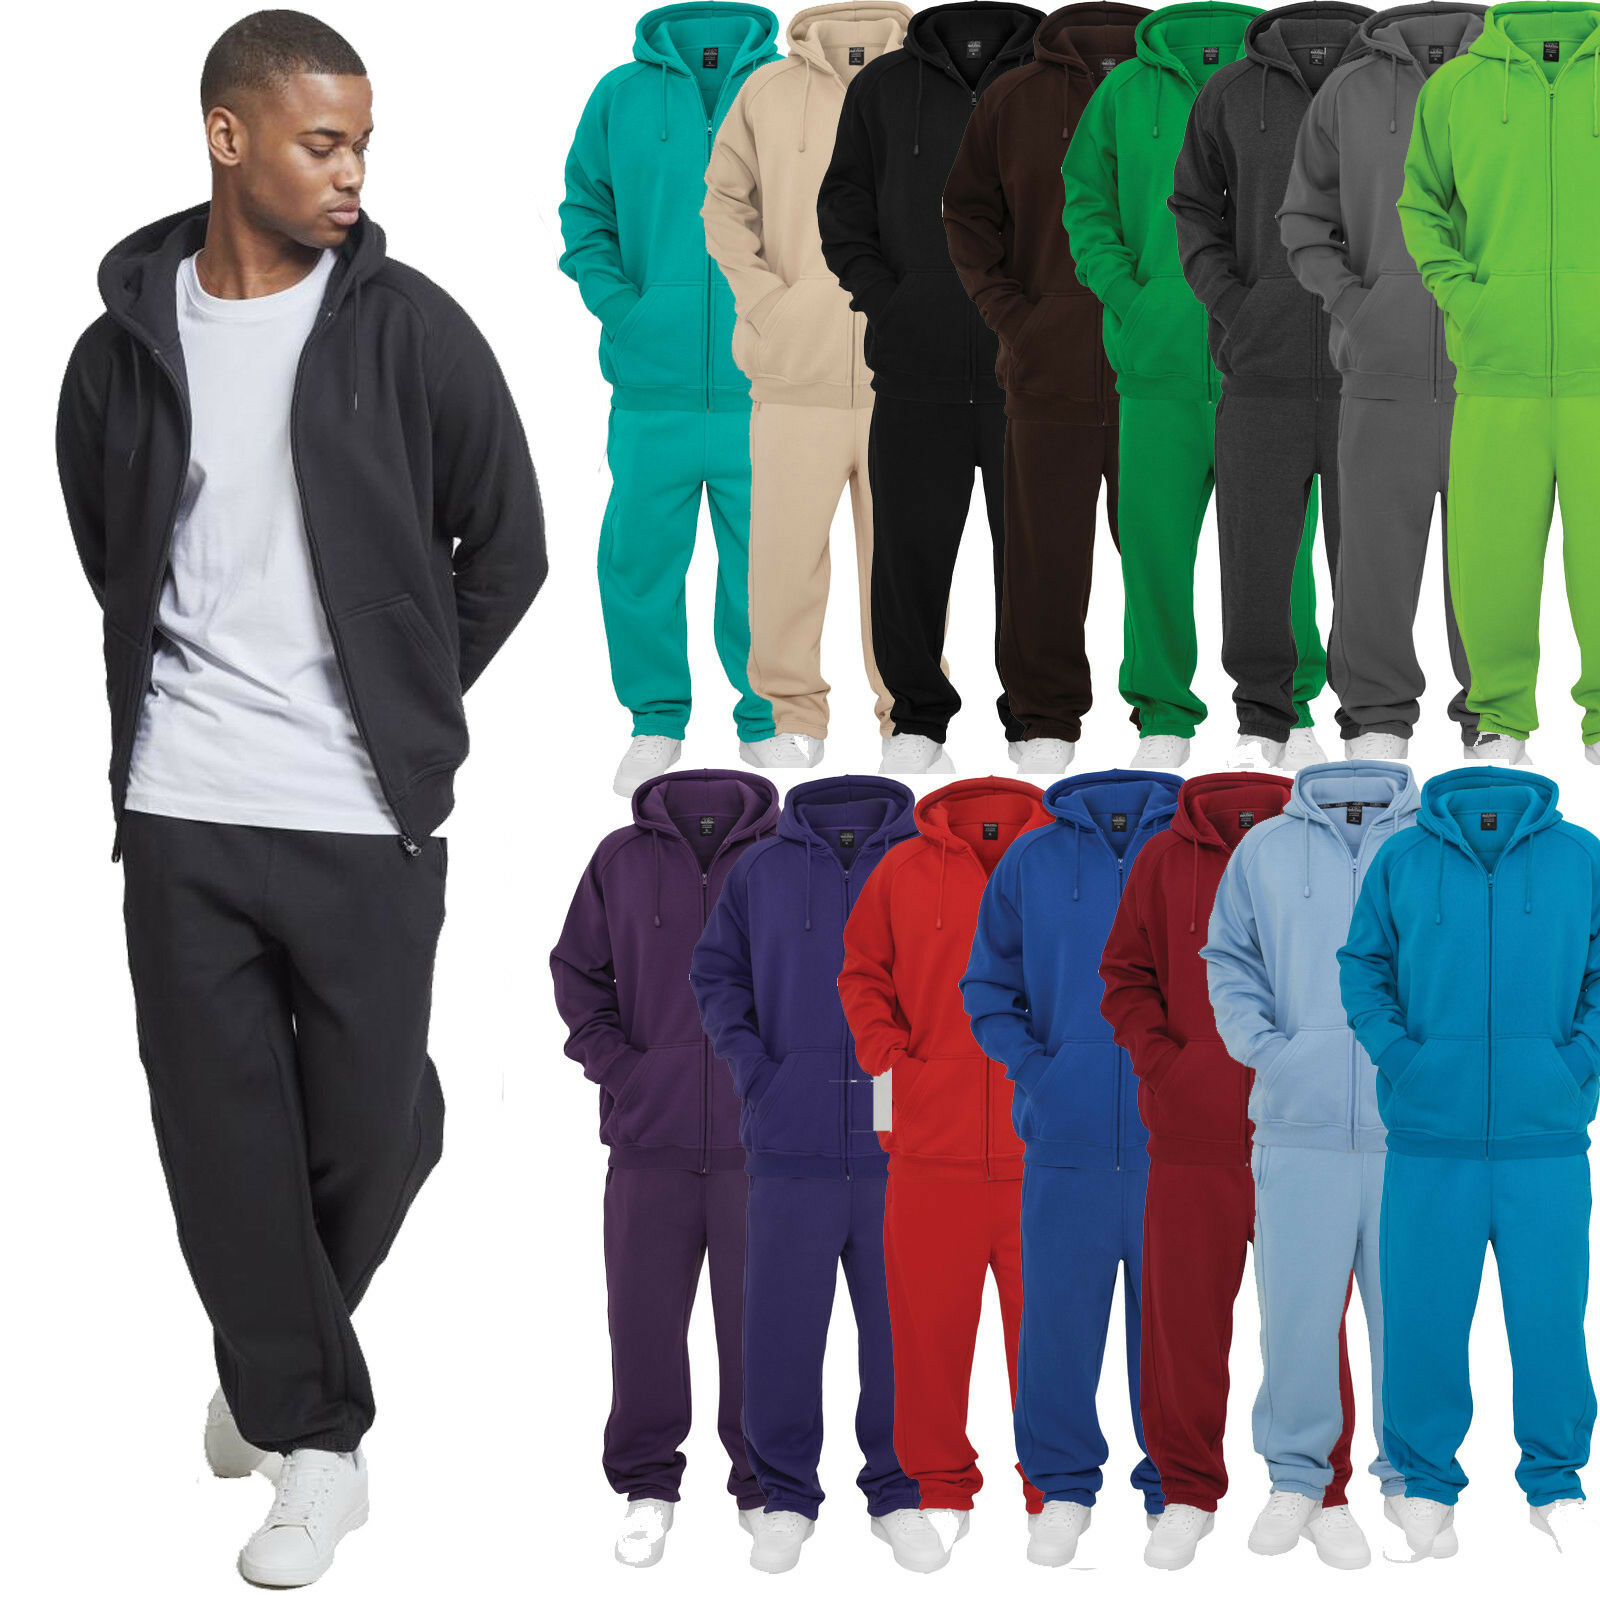 Details about Urban Classics Blank Suit Jogging Suit Leisure Suit Sweat Suit Cotton Fabric